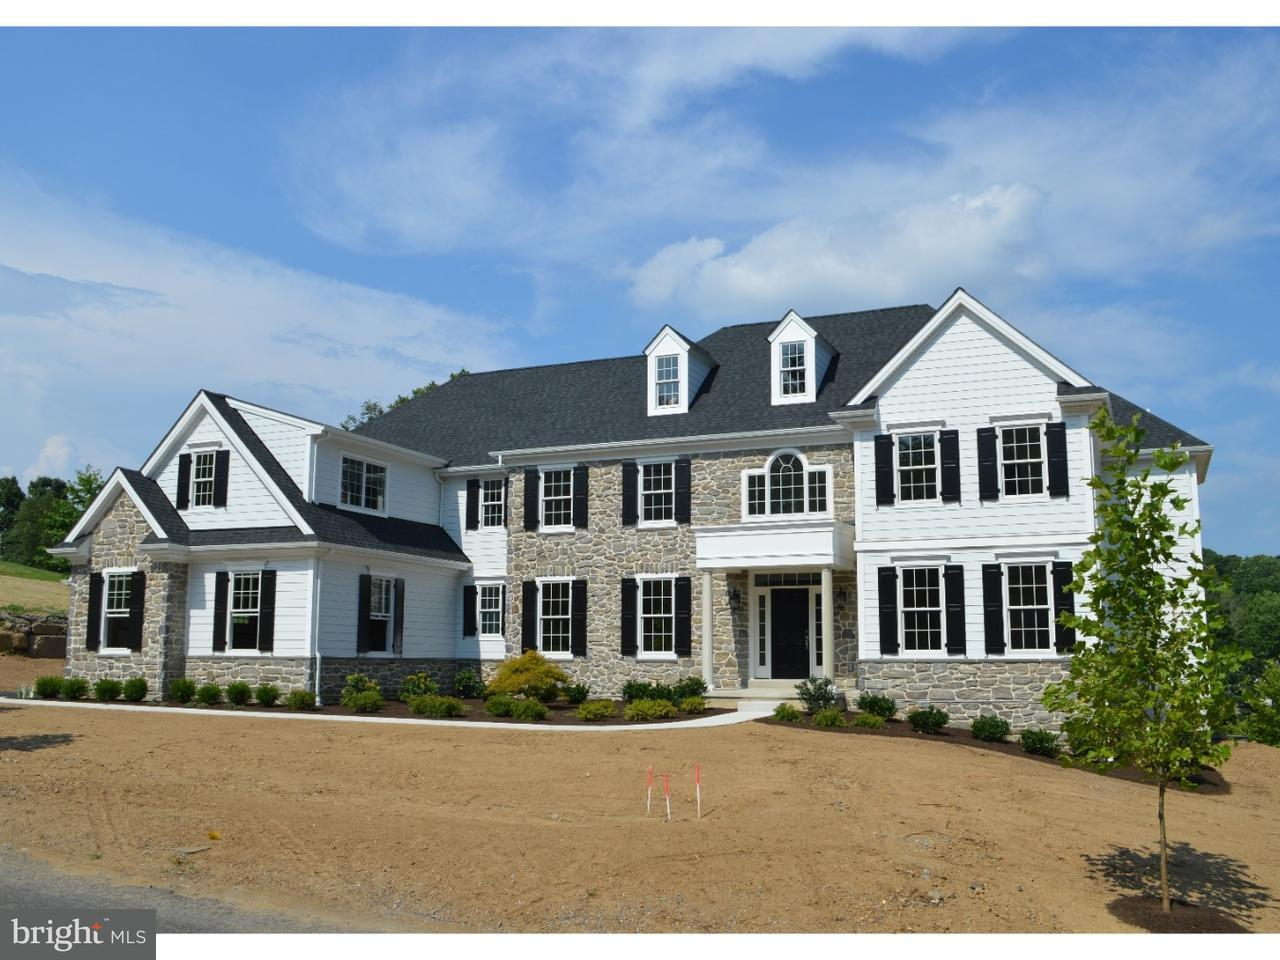 Single Family Home for Sale at LOT 16 GEIST VIEW Circle Media, Pennsylvania 19063 United States